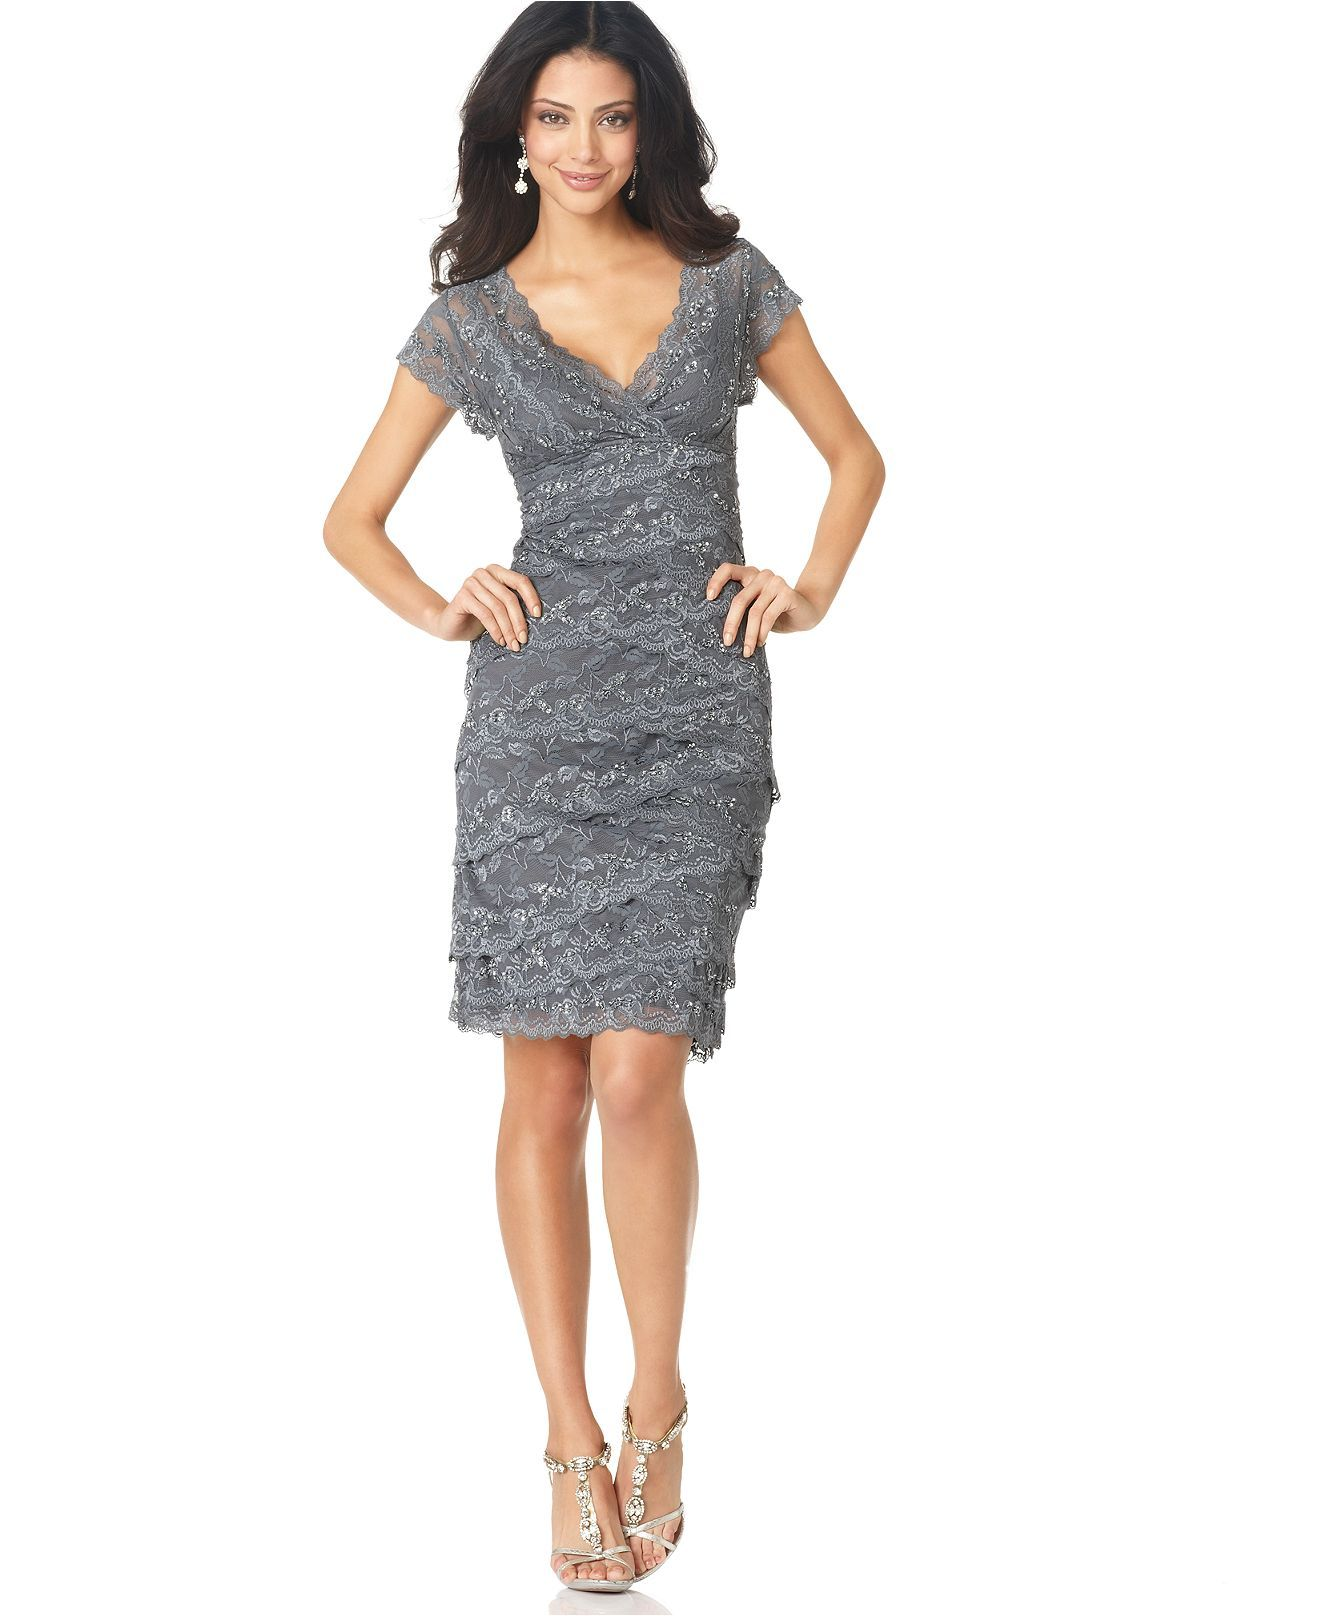 Marina Dress Cap Sleeve Lace Cocktail